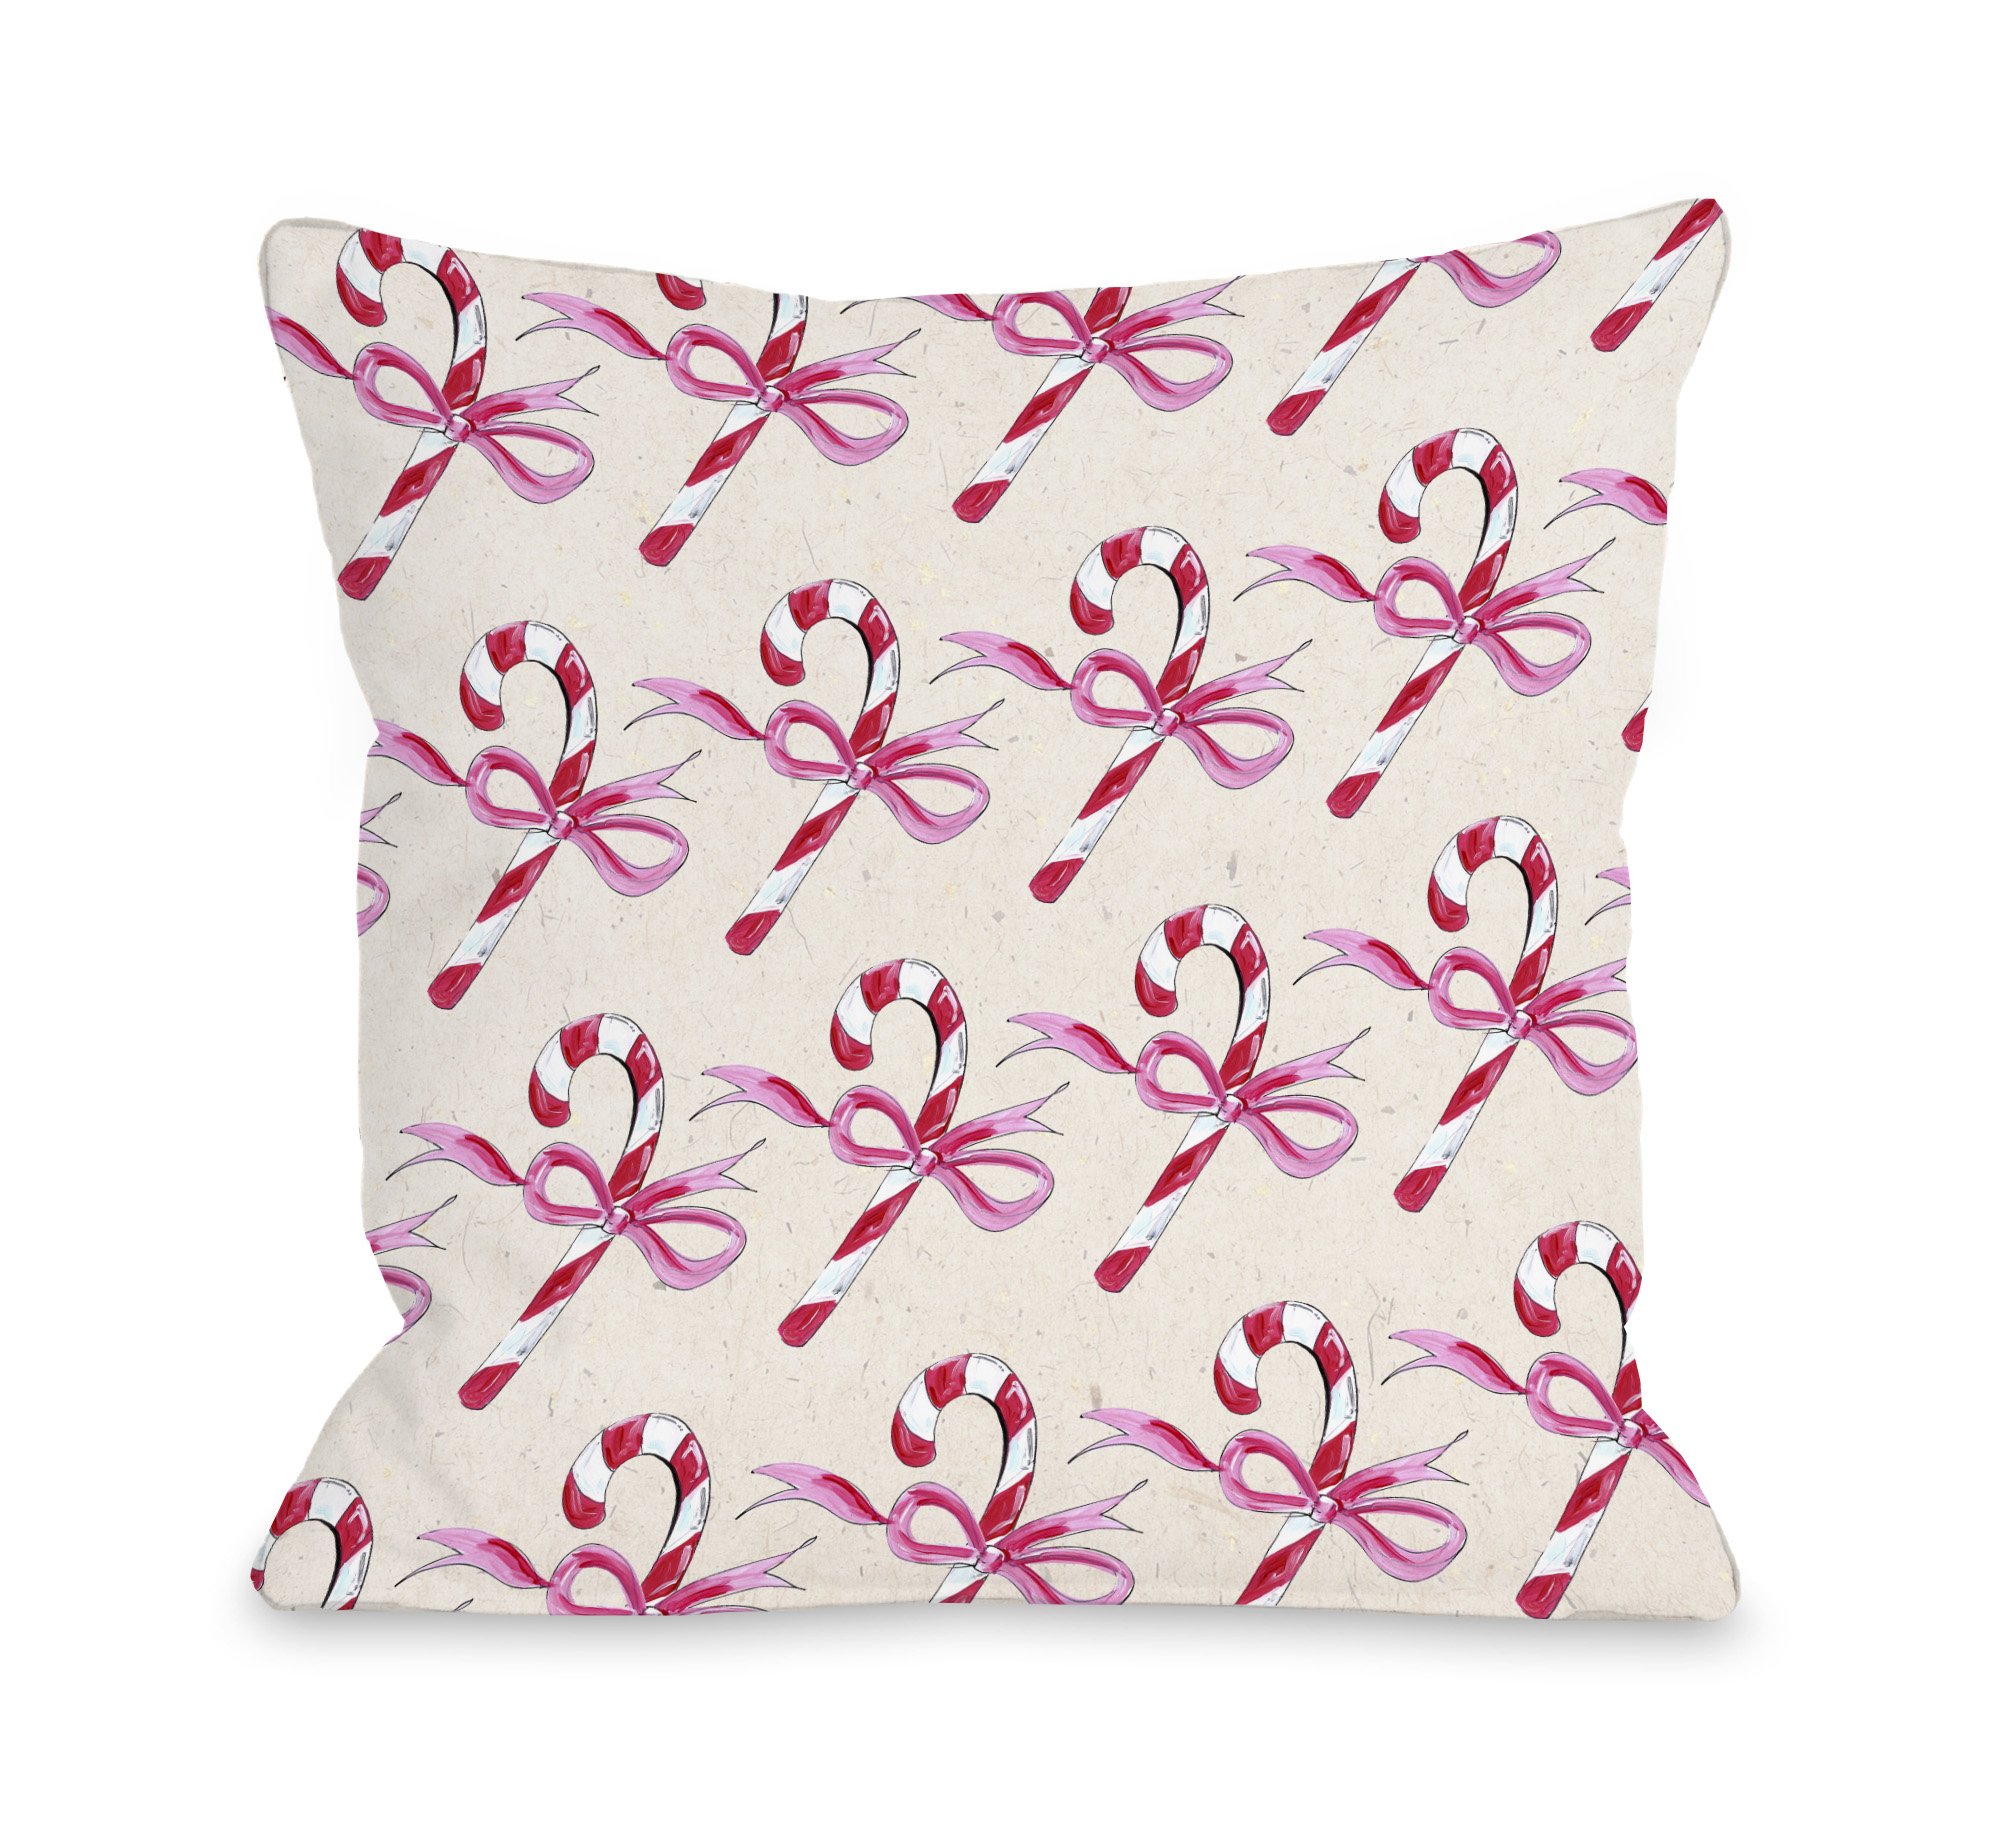 Candy Cane Bows - Beige Pink 16x16 Pillow by Timree